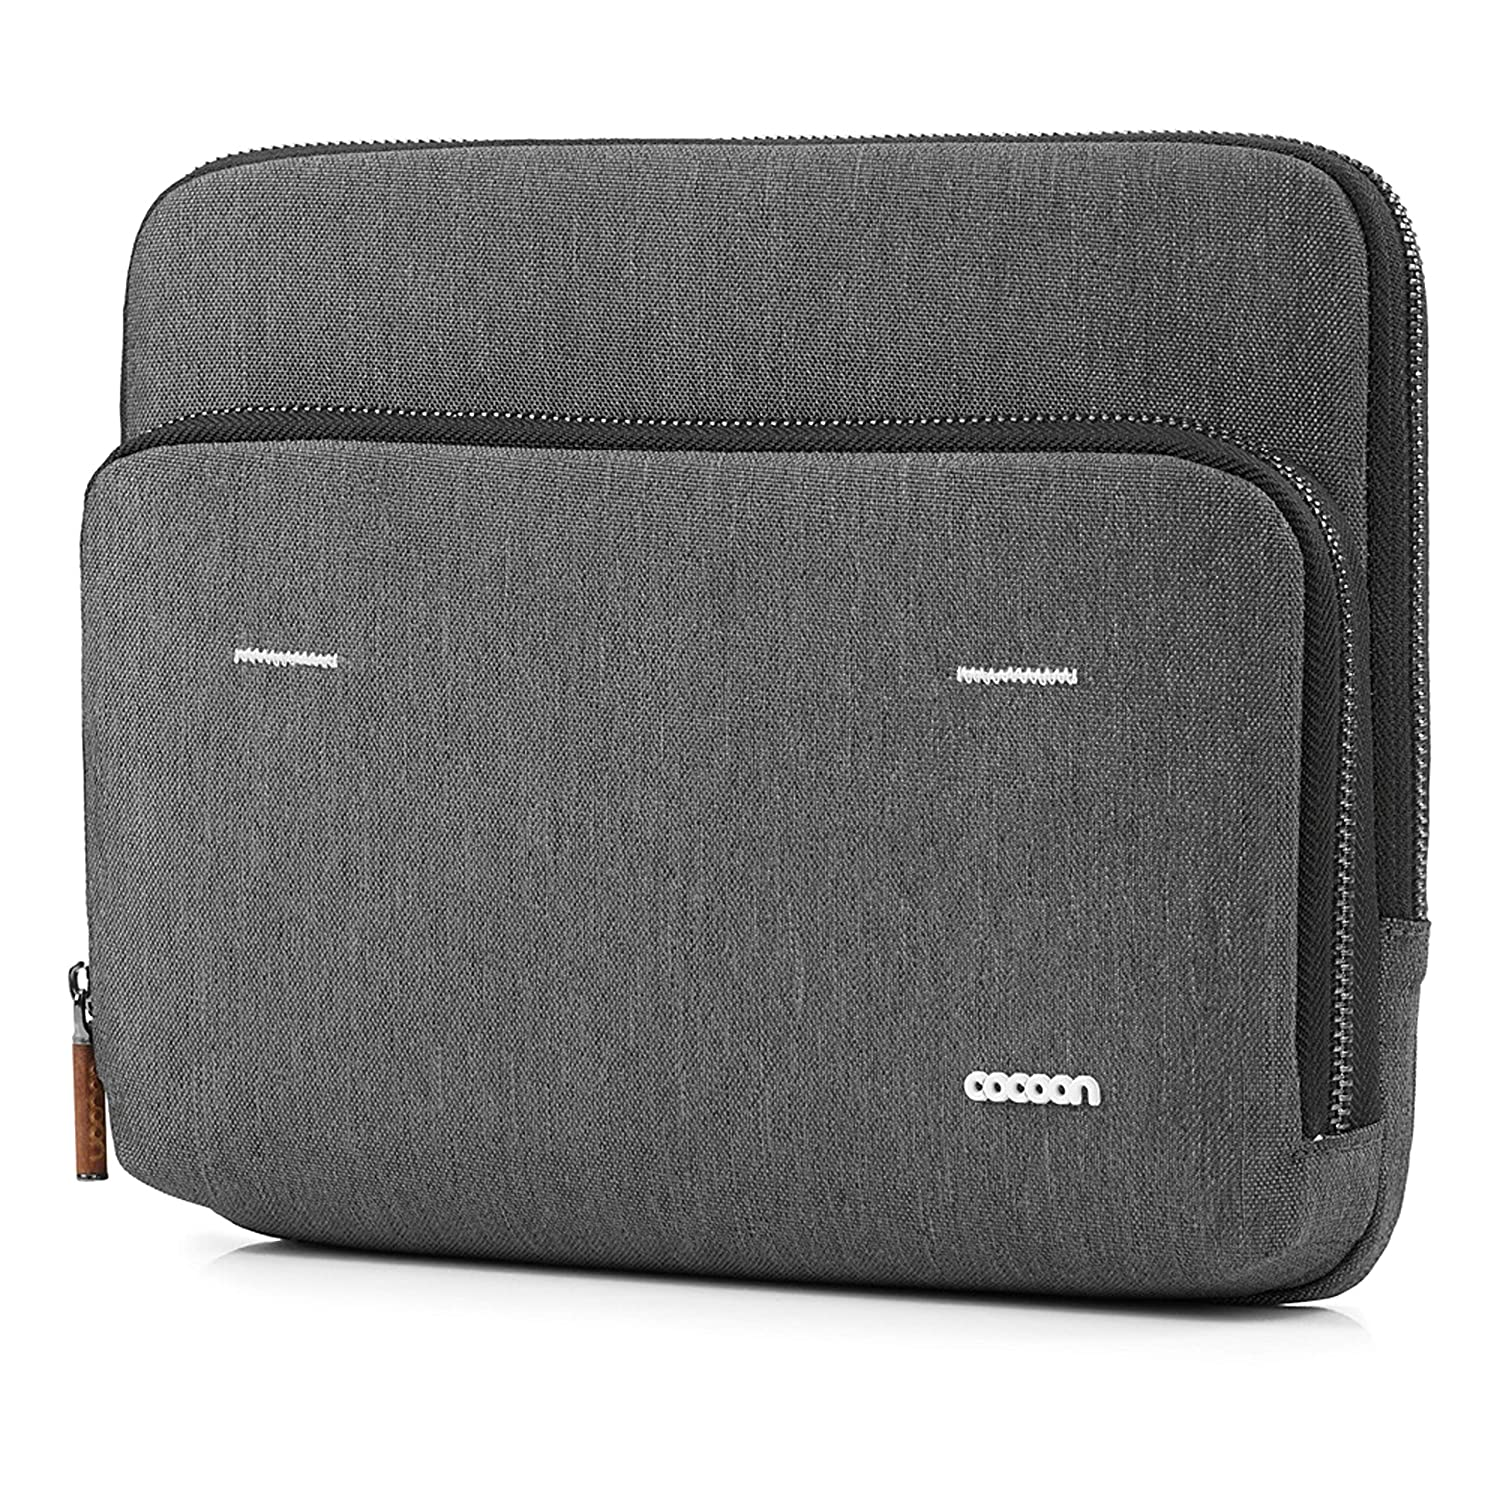 Dark Grey // 36.1x10.7x28.5 cm Cocoon GRAPHITE LETTER Case /& Organizer for MacBook Pro 13 Padded and Water Proof Fake Fur